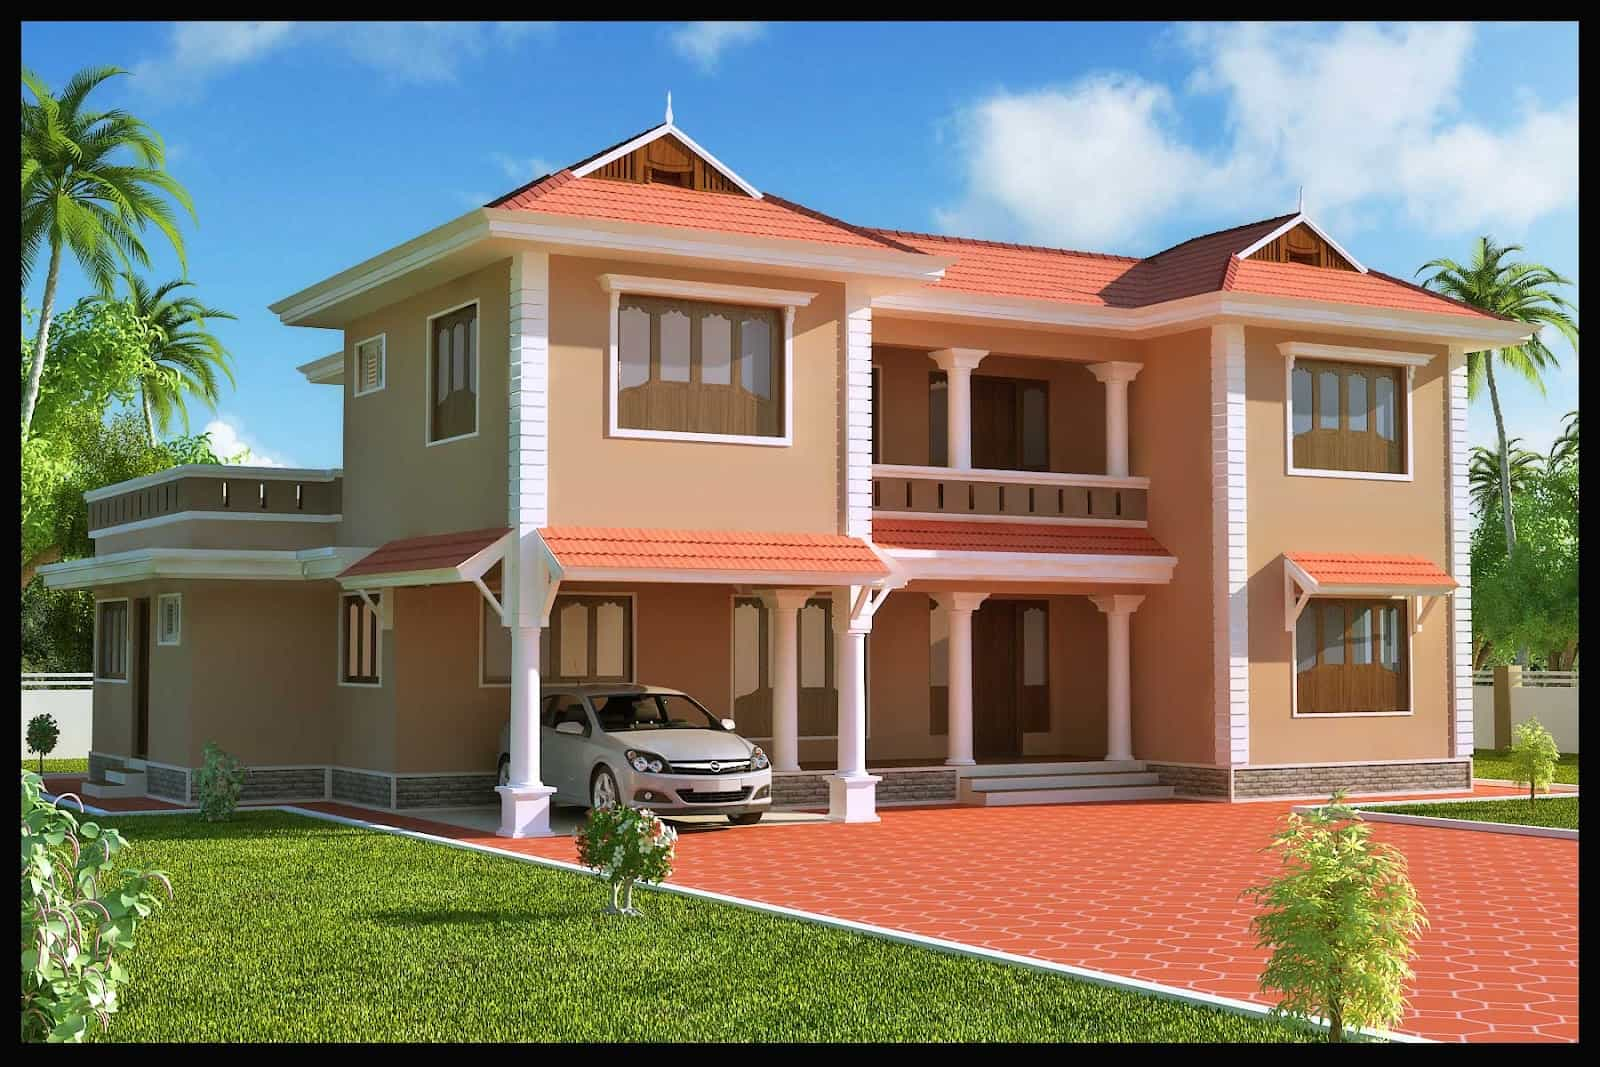 ... house exterior design Kerala Home Design Duplex Interior at 2618 sq.ft